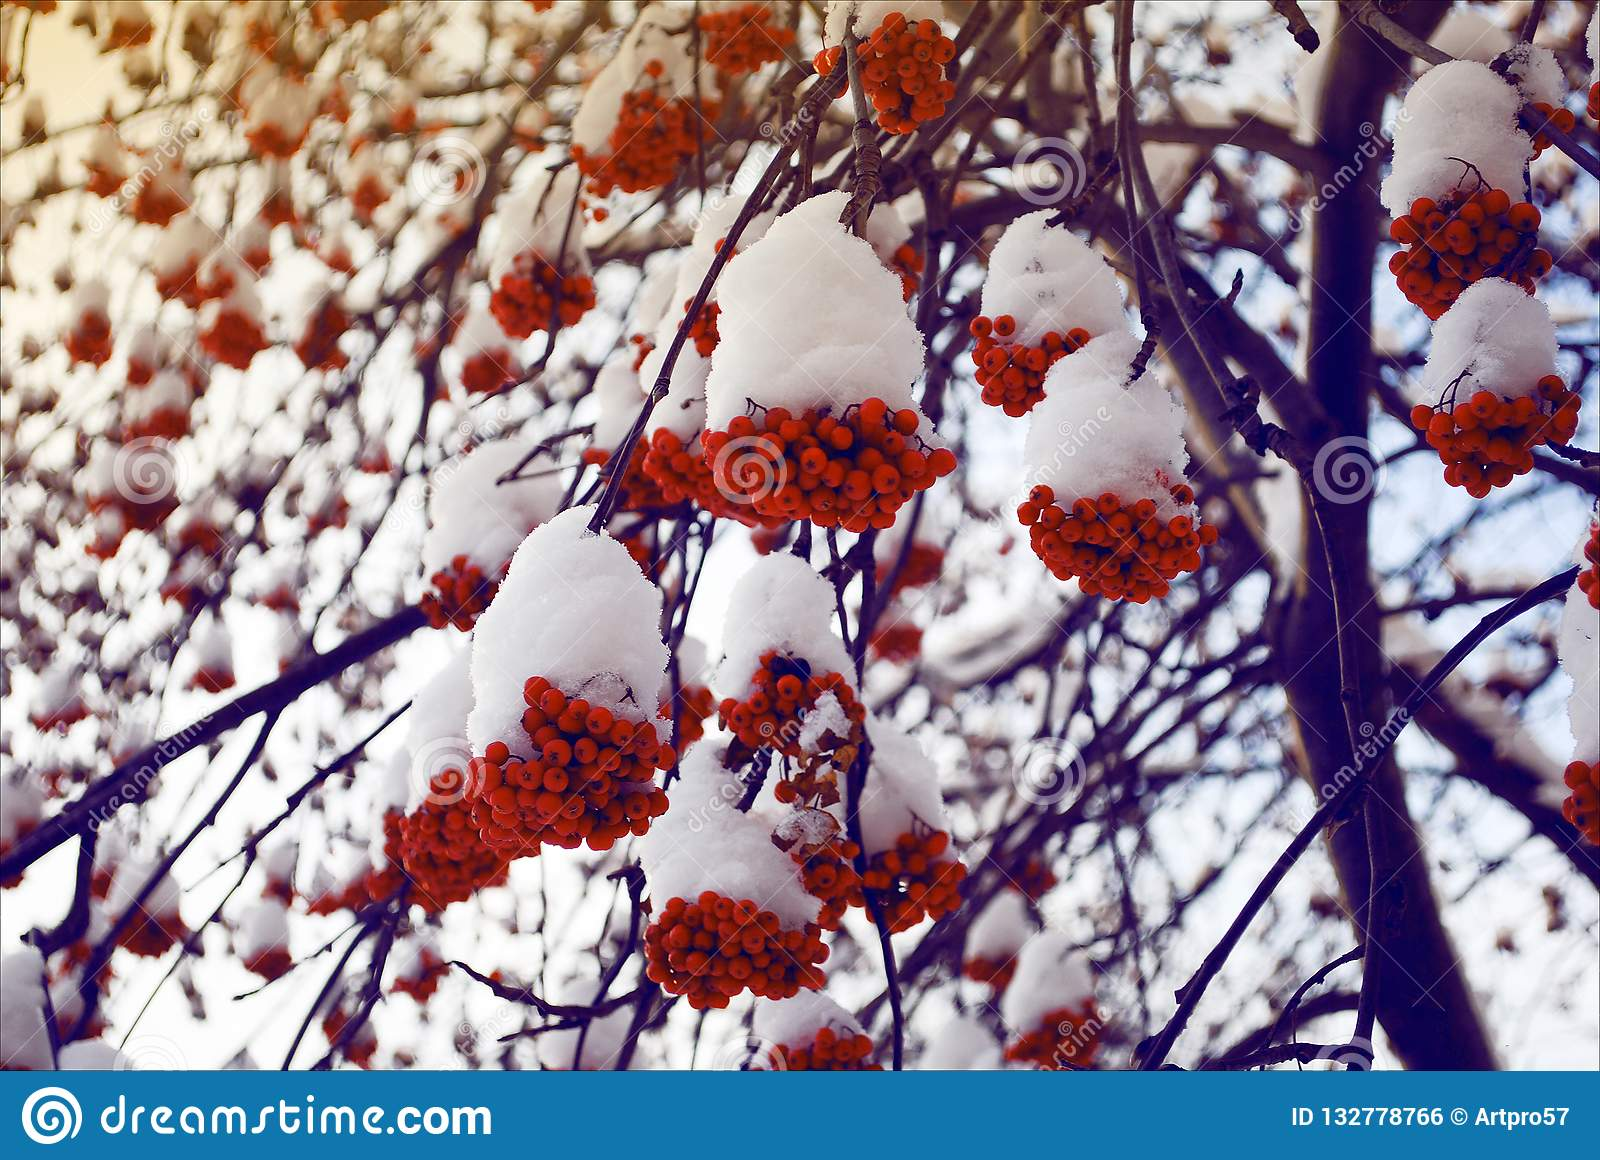 Rowan bunches of snow on the branches